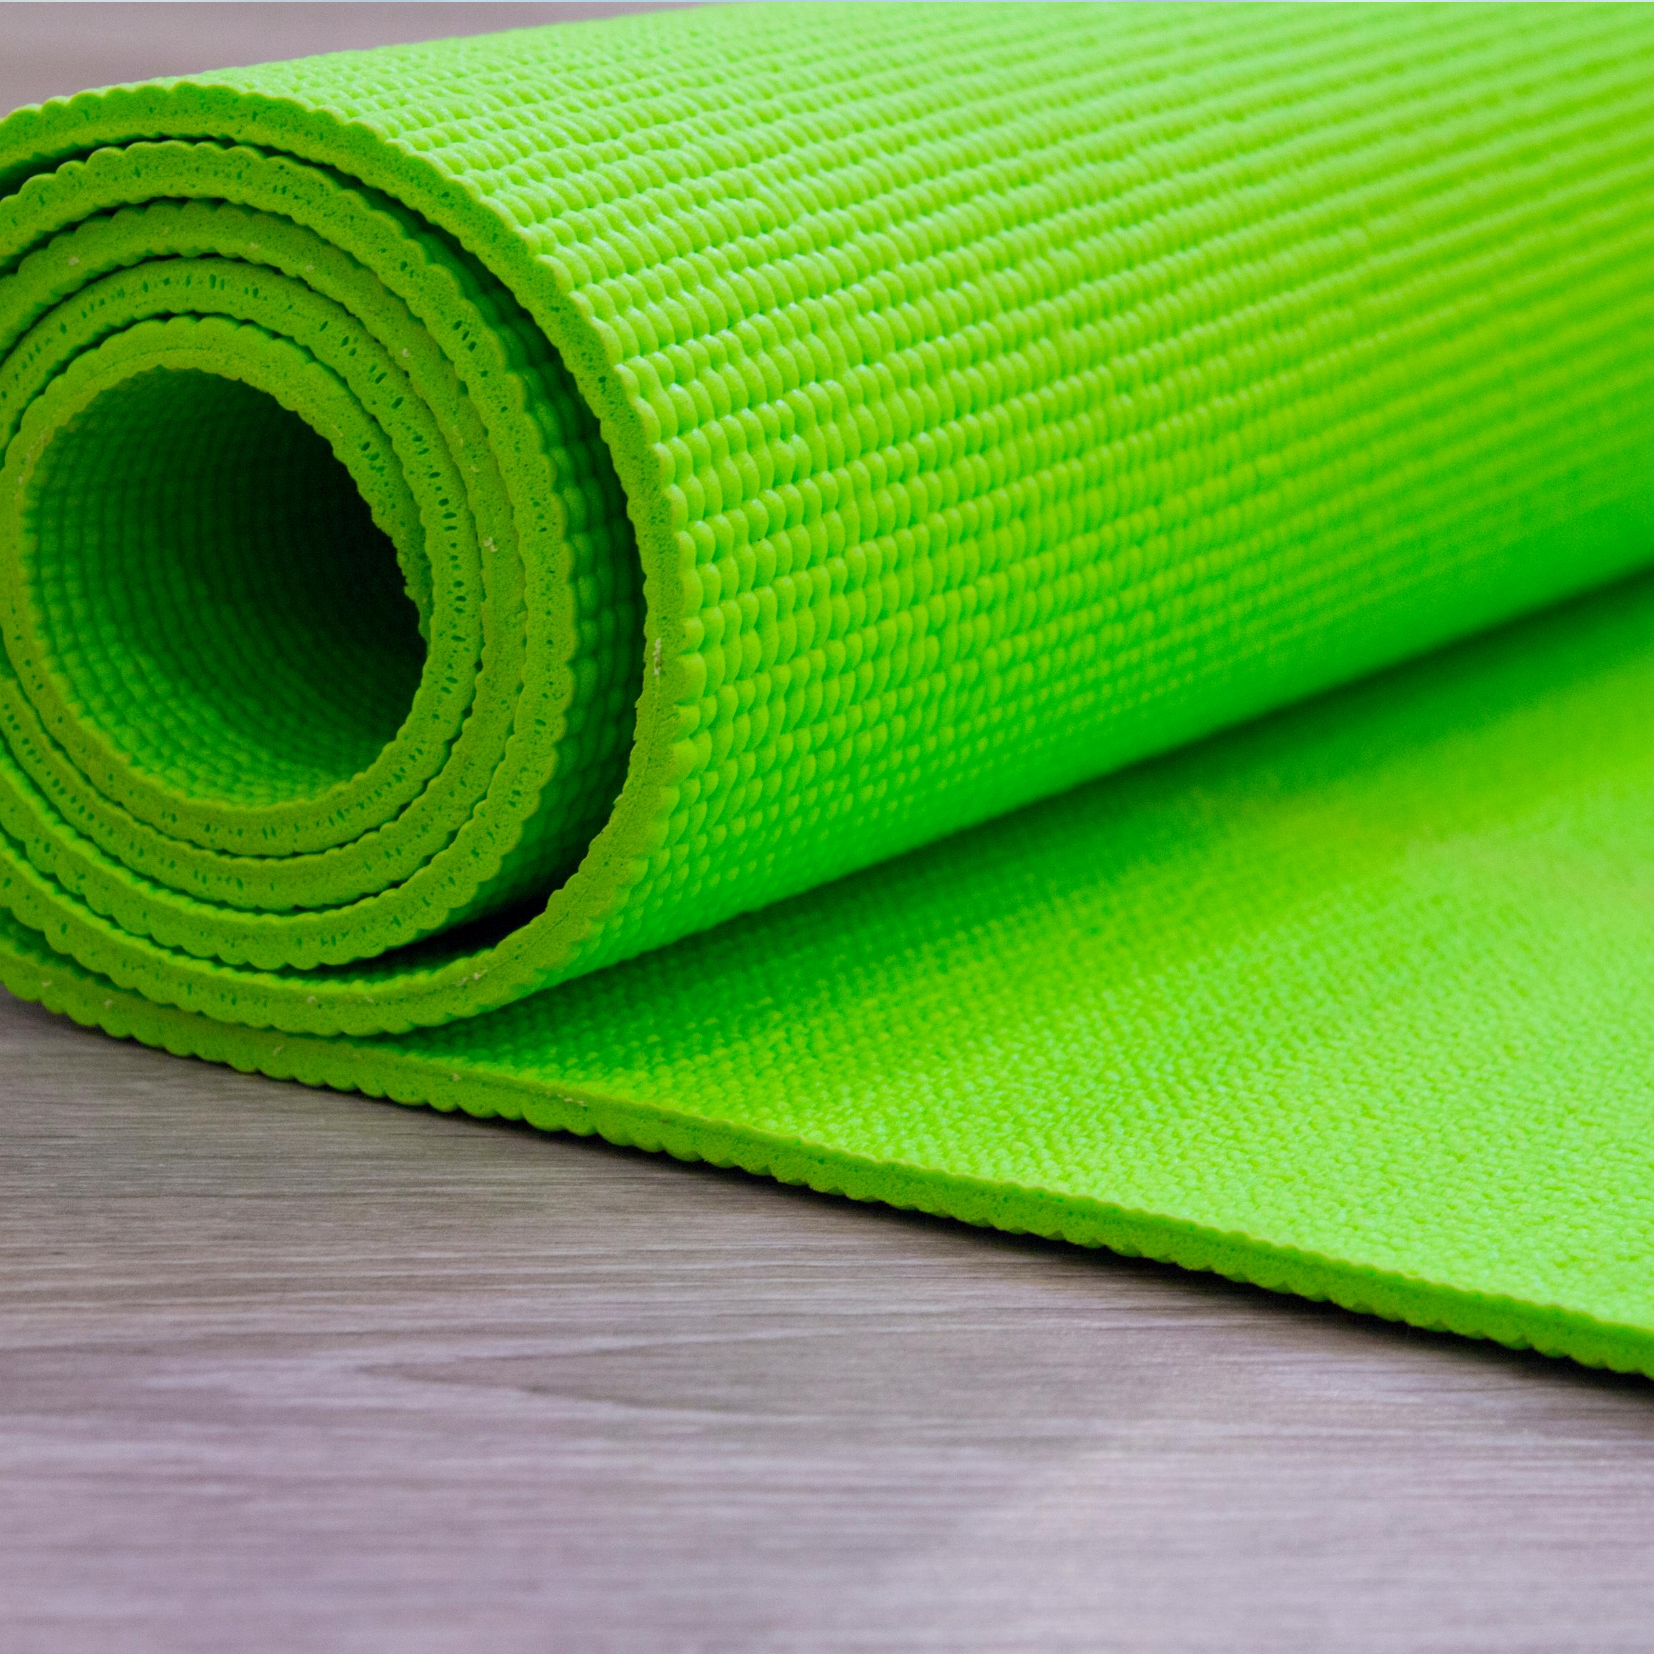 Green Mat depicting Exercise/ Movement Services